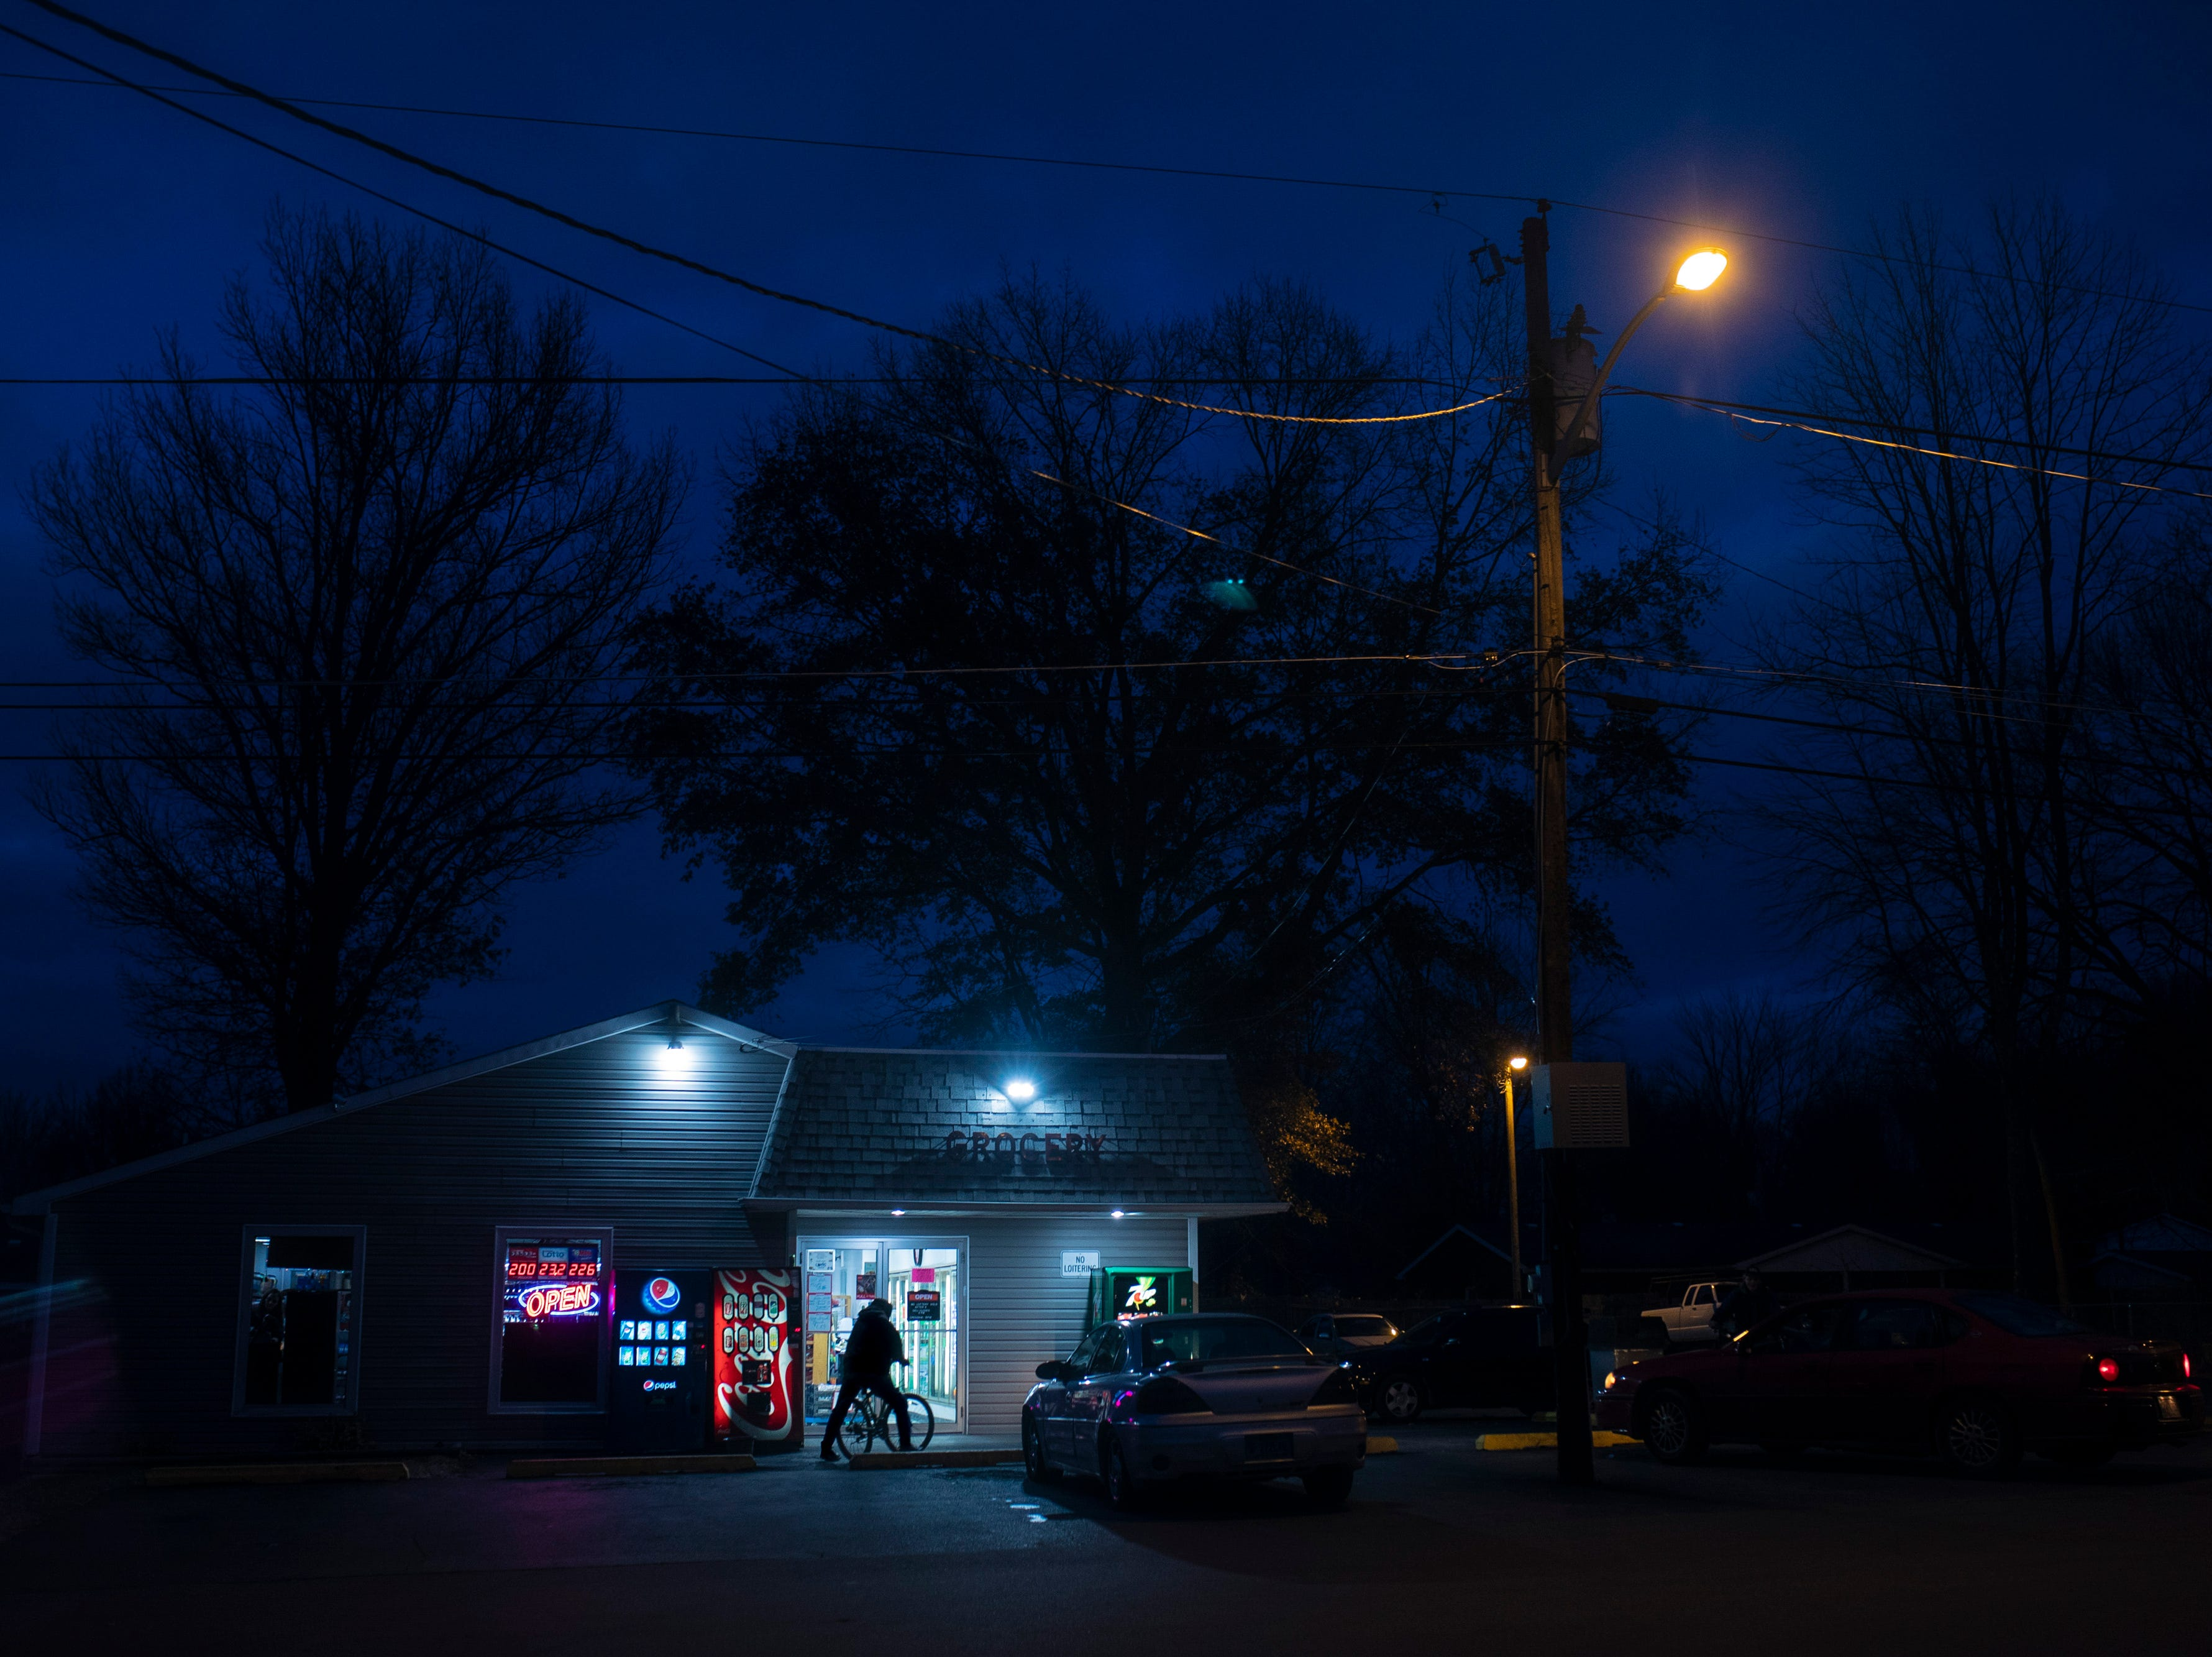 A patron parks his bicycle outside the Northside Grocery along the notorious Rural Street in Austin, Indiana. The store is a one-stop-shop in the low-income part of town most heavily hit by the drug epidemic. Bicycles are a common mode of transportation in the area where many can't afford vehicles, or other transportation. Dec. 5, 2018